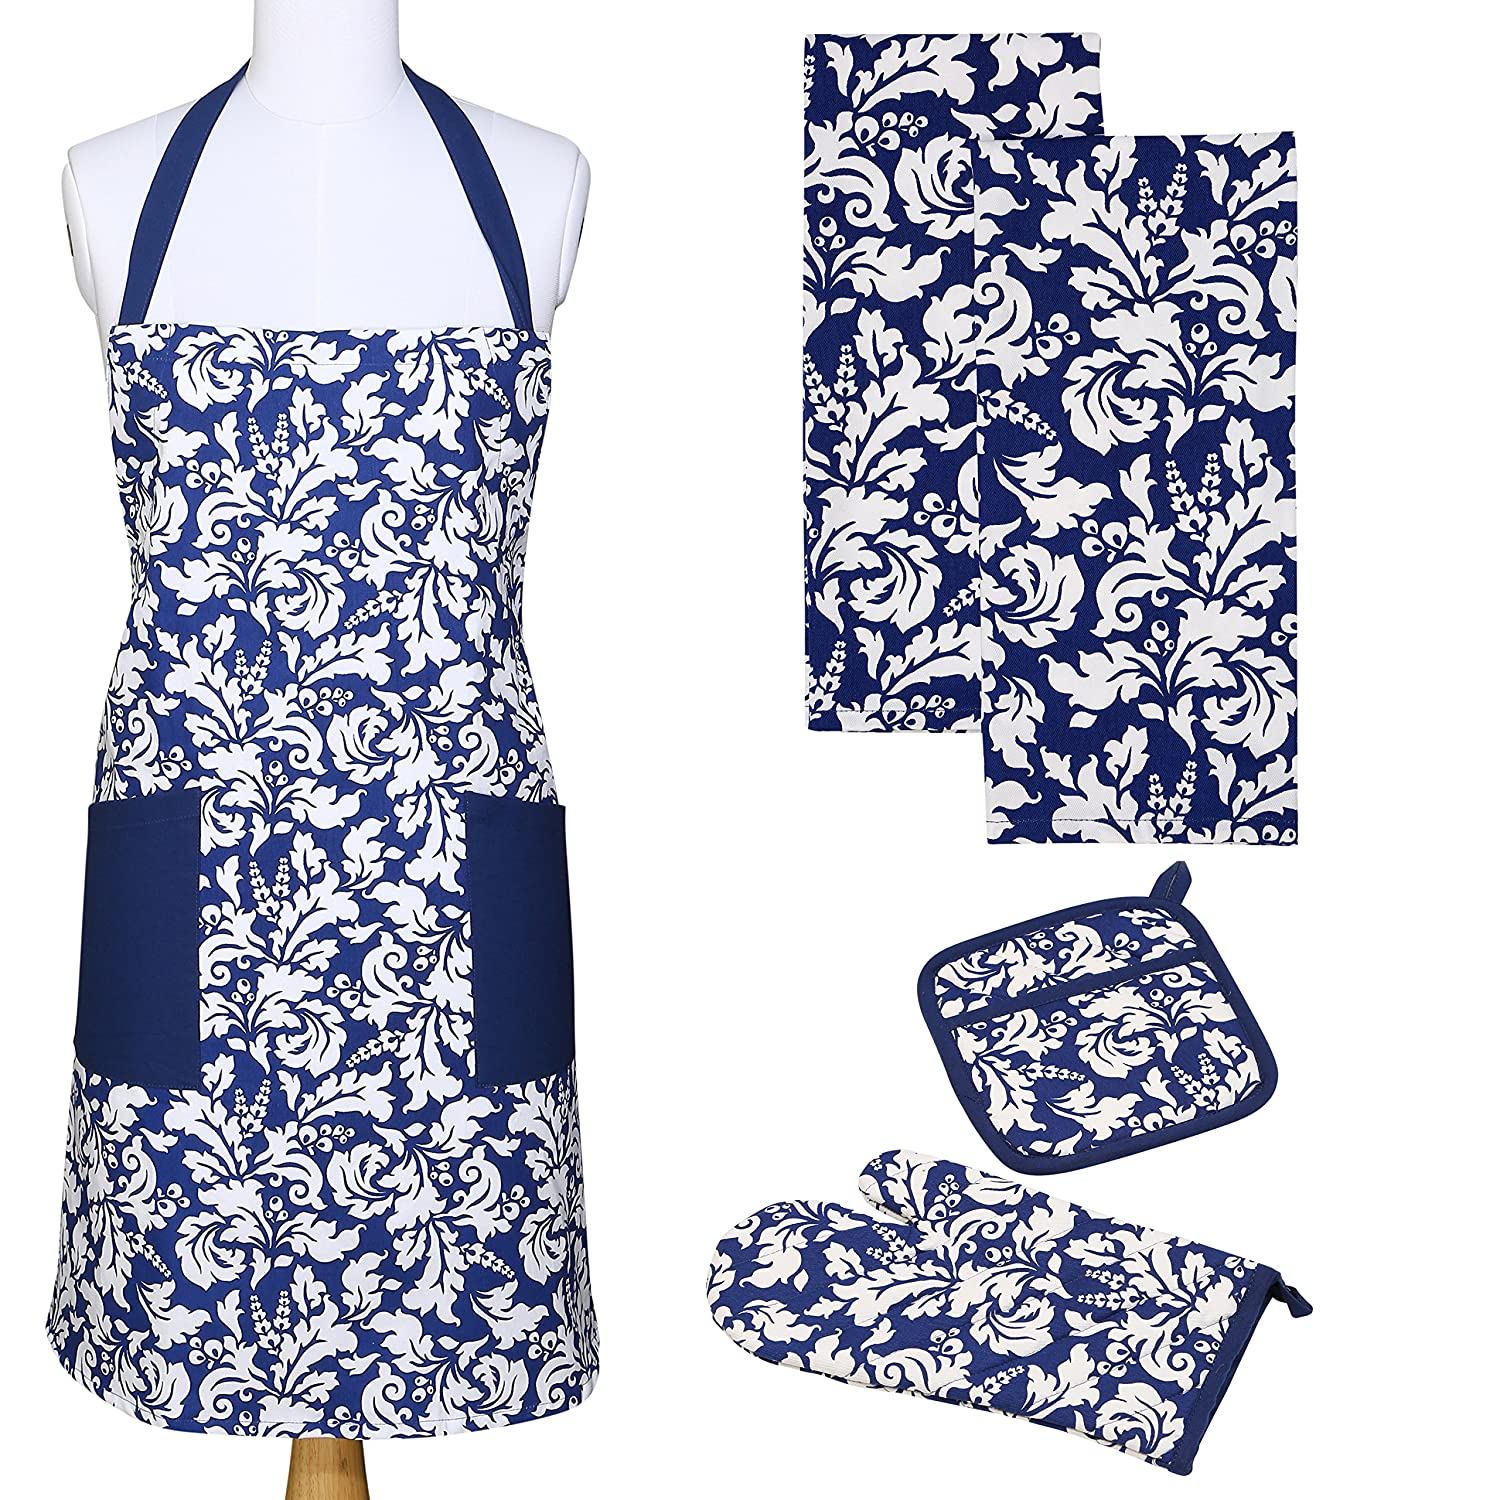 Yourtablecloth Kitchen Gift Set-1 Kitchen Apron, An Oven Mitt & A Pot Holder-2 Kitchen Dish Towels or Tea Towels-Ideal Cooking Gifts or Gift Ideas for Chefs-Suitable for Men & Women-Nautical Blue